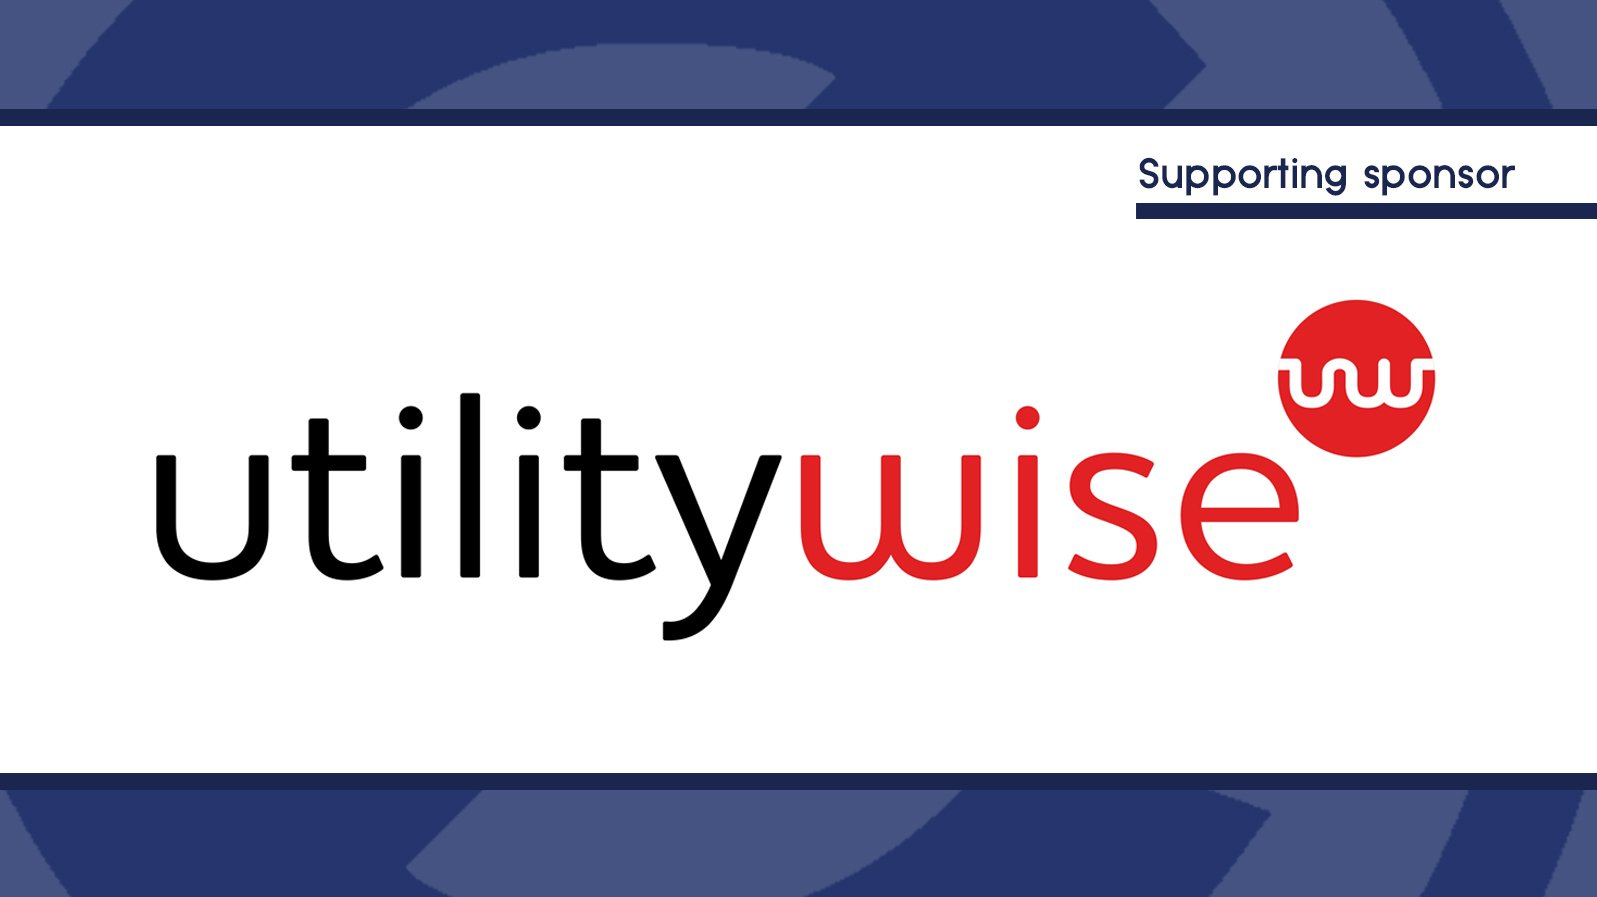 supporting-sponsor-utilitywise